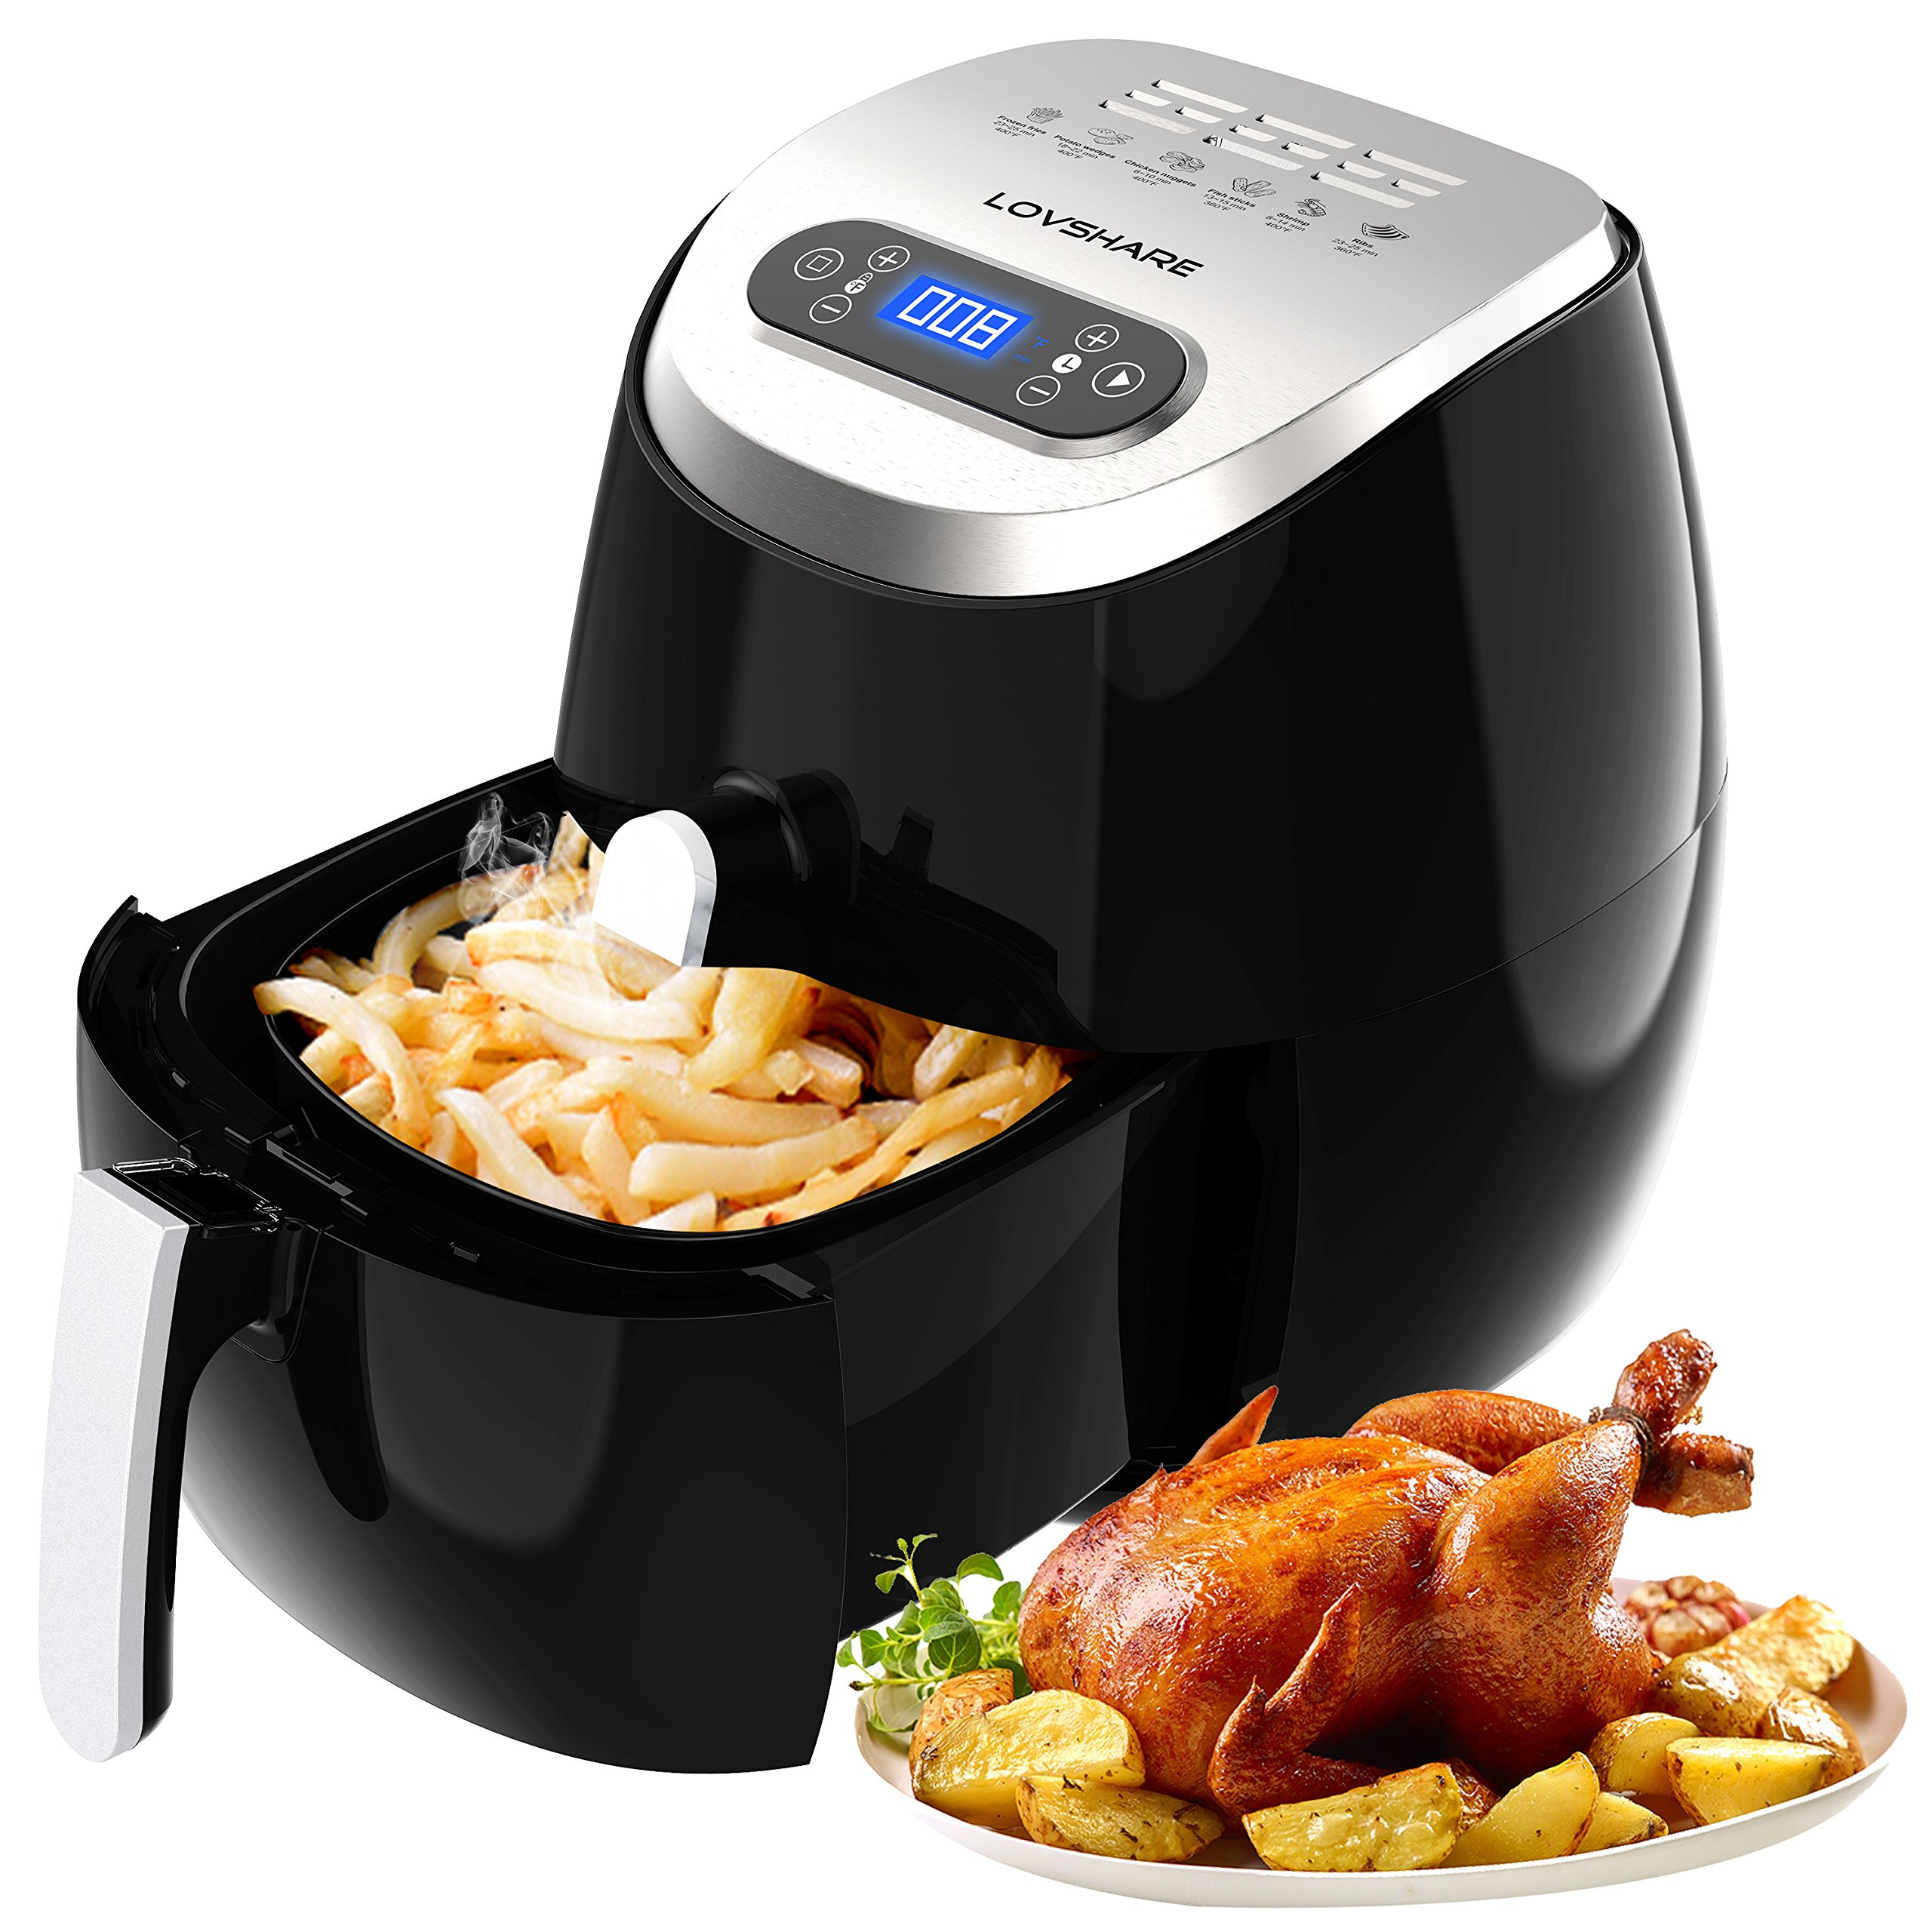 Air Fryer with Touch Screen Control ,LOVSHARE Oil Free Electric Air Fryer for Healthy Fried Food,Comes with Recipe Book,Digital Display with Automatic and Manual Timer & Temperature Controls, 3L